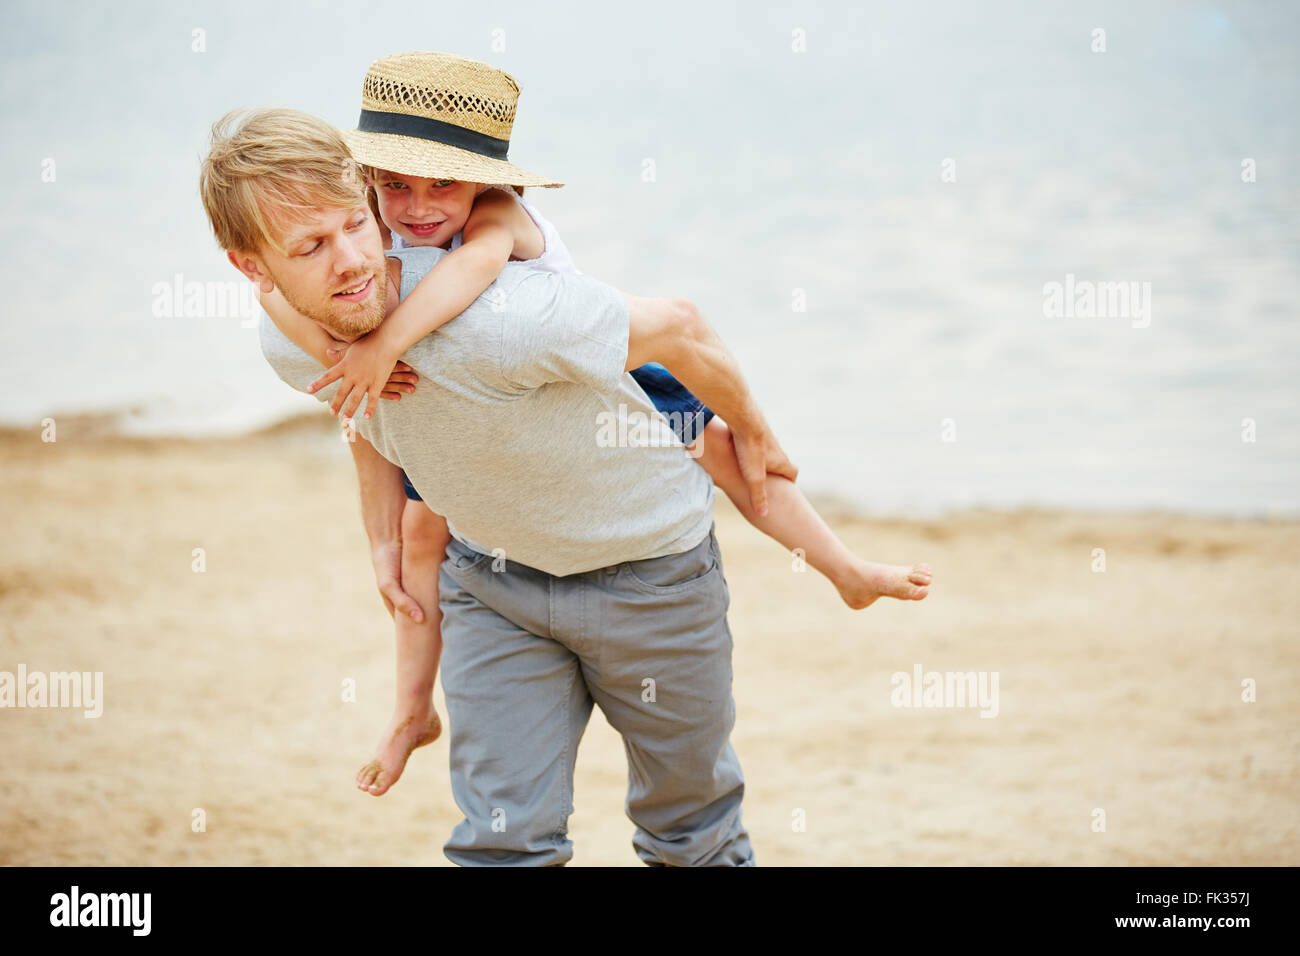 Man carrying girl piggyback on his back on a beach in summer - Stock Image